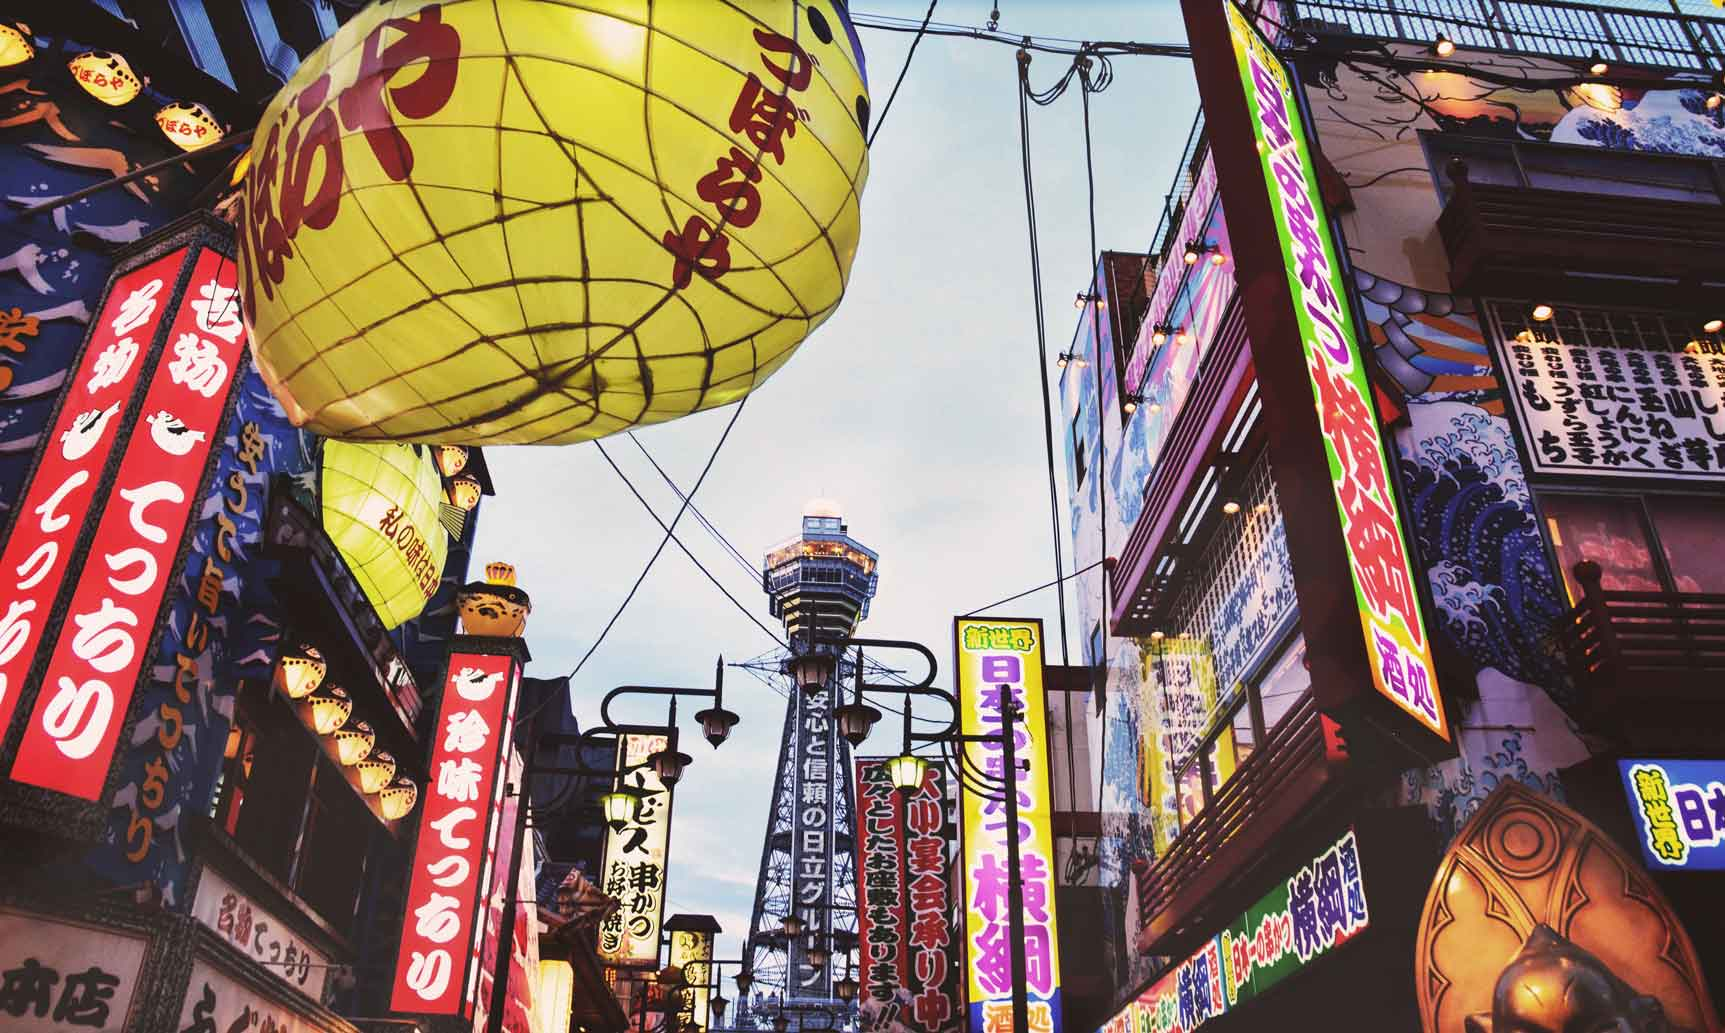 Where to Stay in Osaka: Best Hotels and Neighborhoods